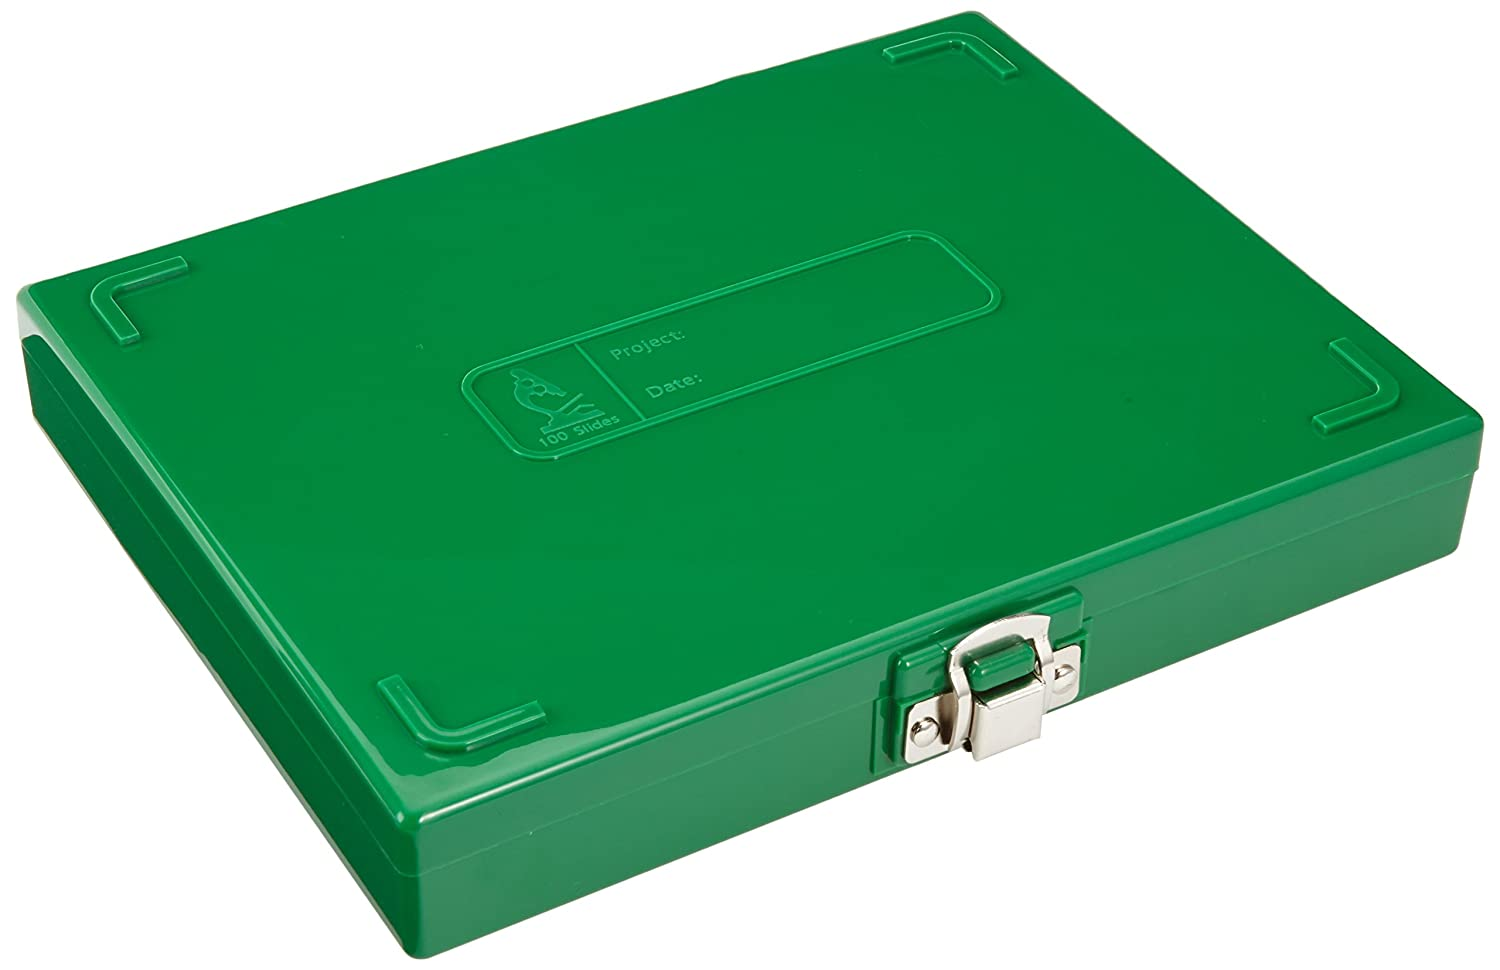 neoLab 2  2435  slide box for 100  slides, PS, green 2-2435